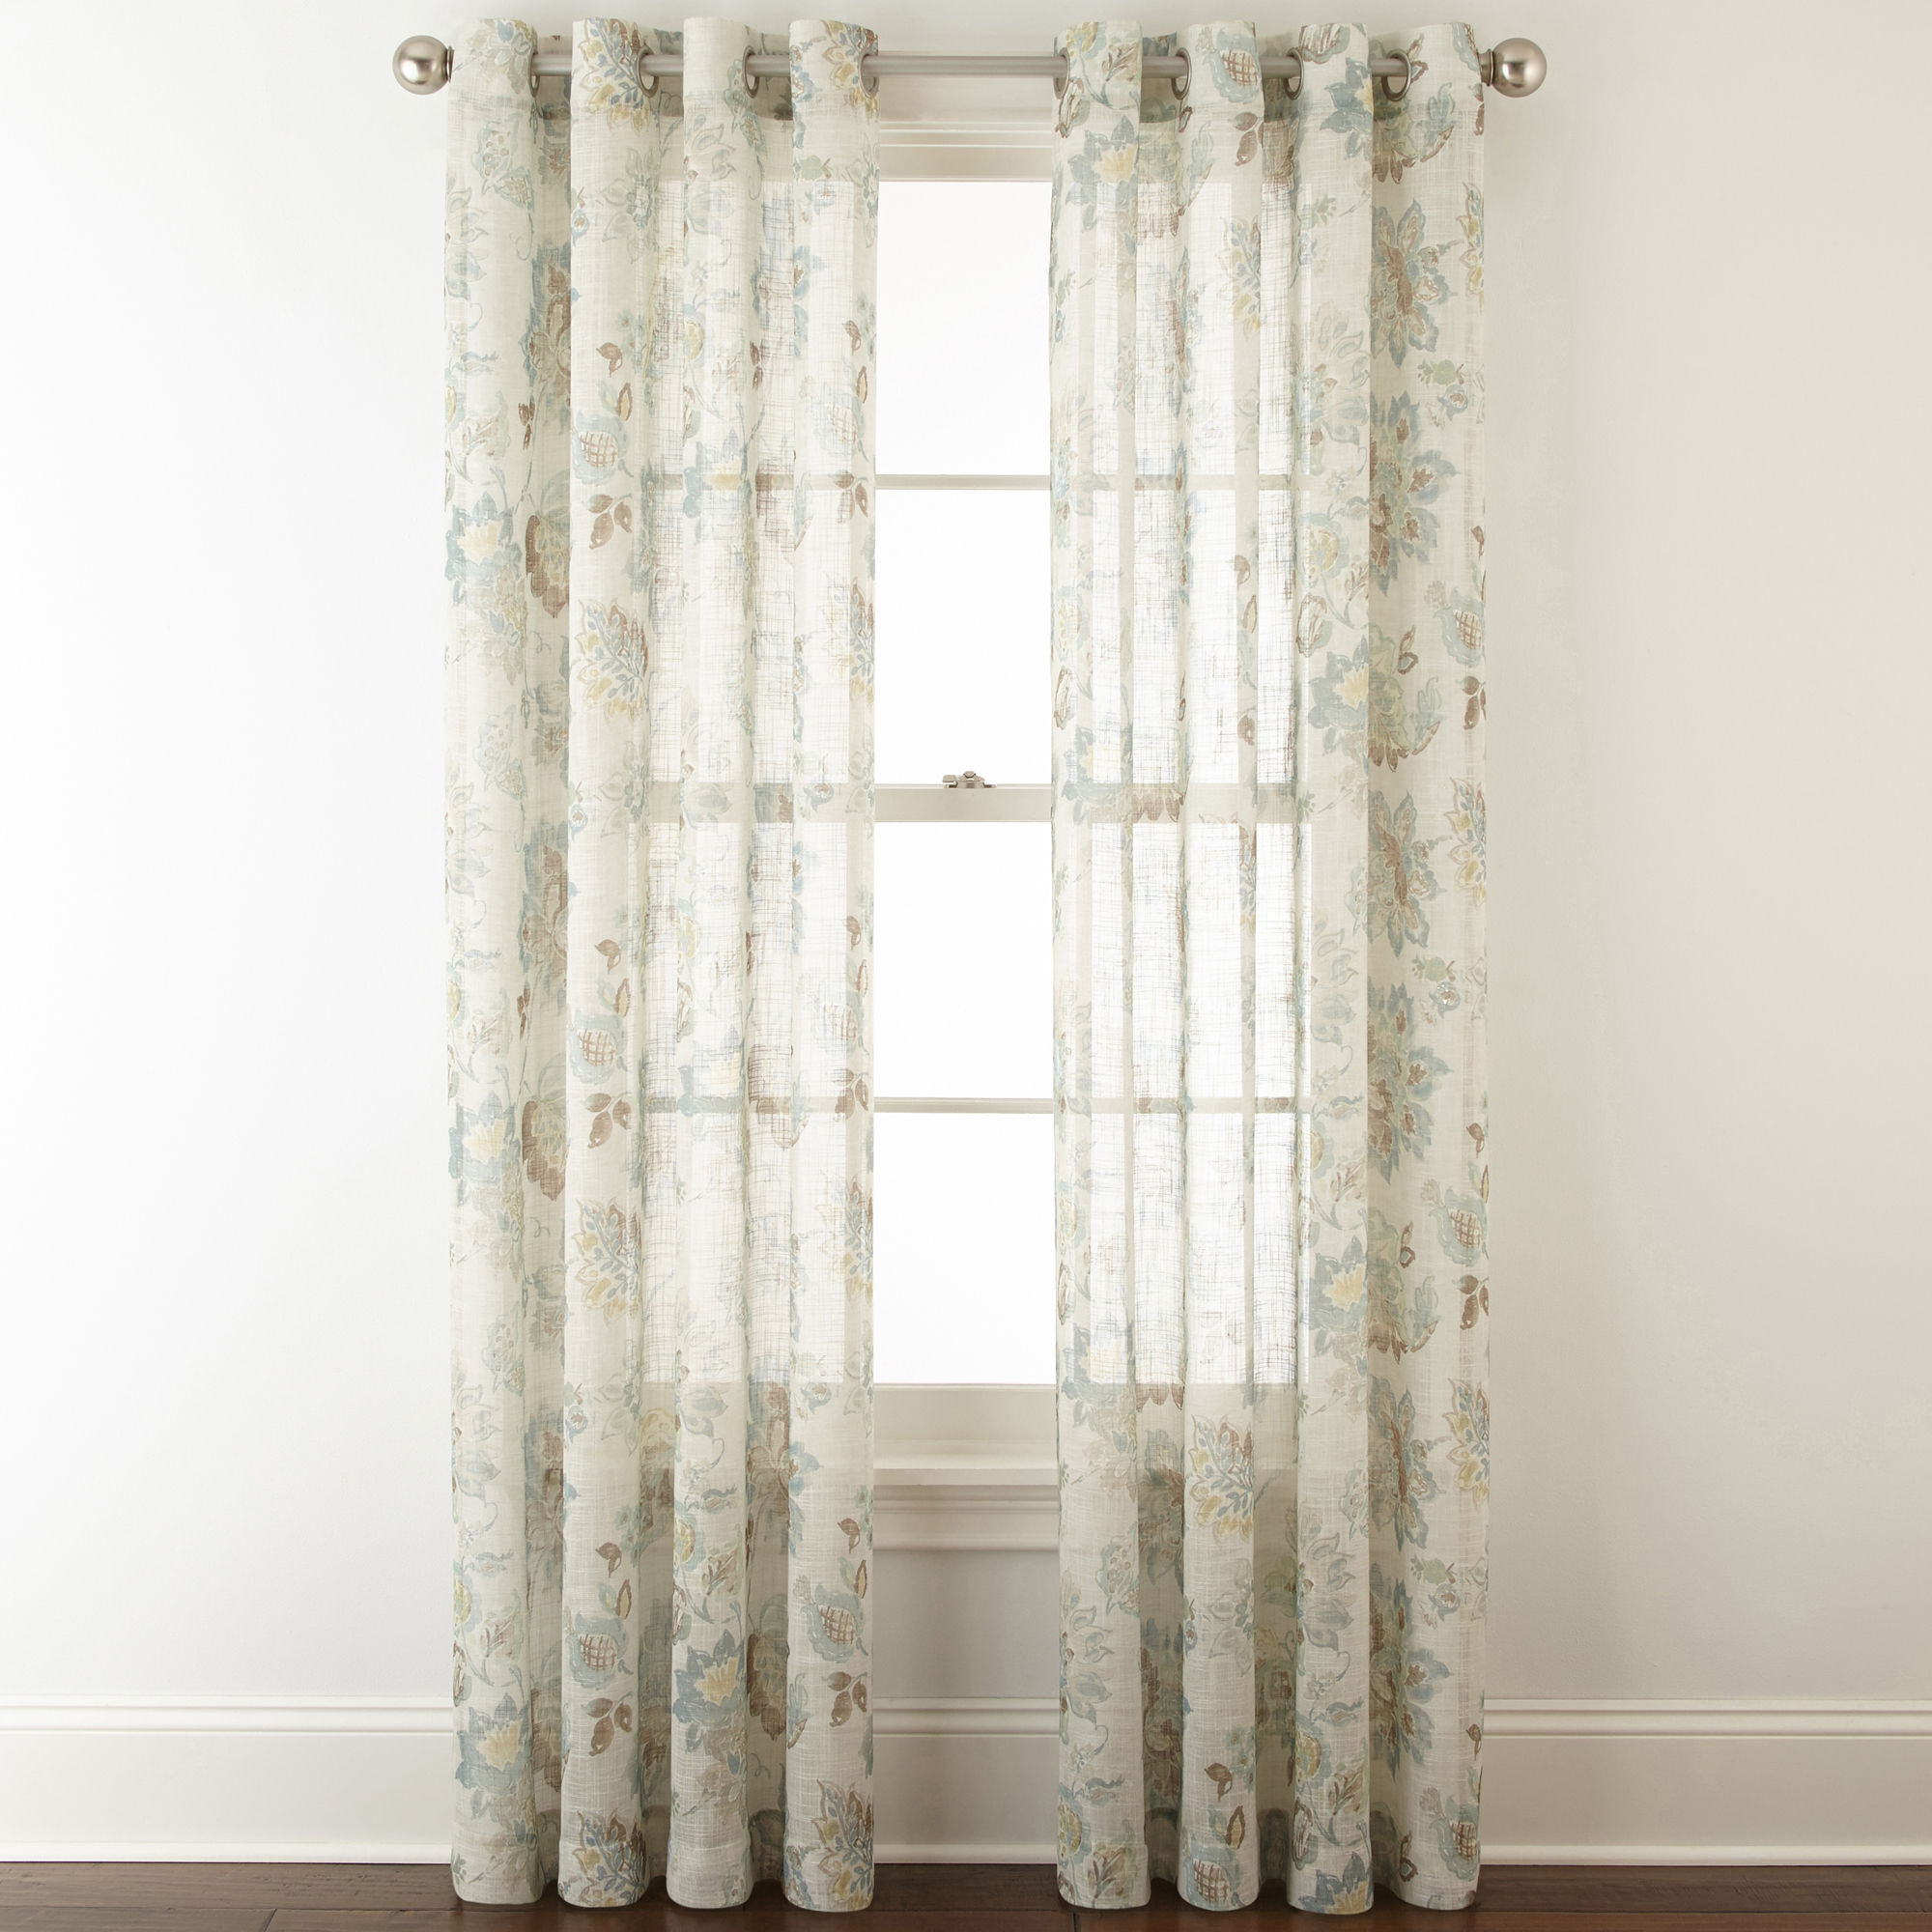 Curtains Ideas 187 Jc Penney Curtains And Drapes Inspiring